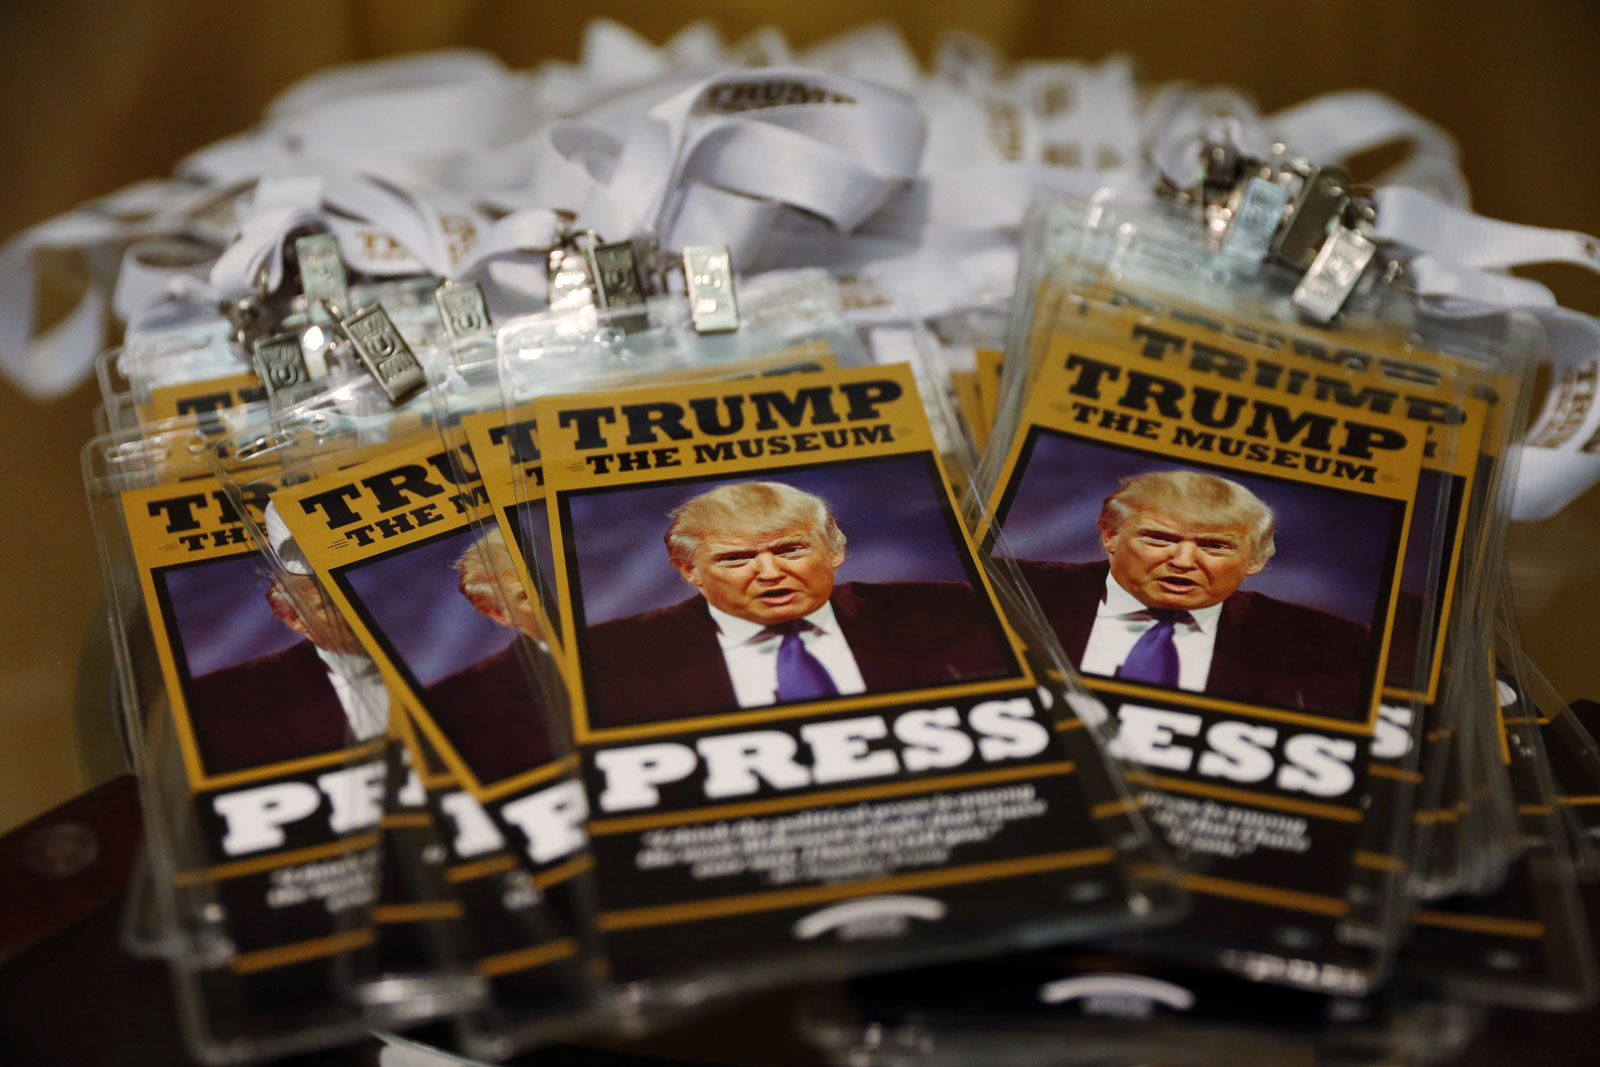 Press passes at an anti-Trump display near the Republican National Convention, Cleveland, Ohio, July 19, 2016